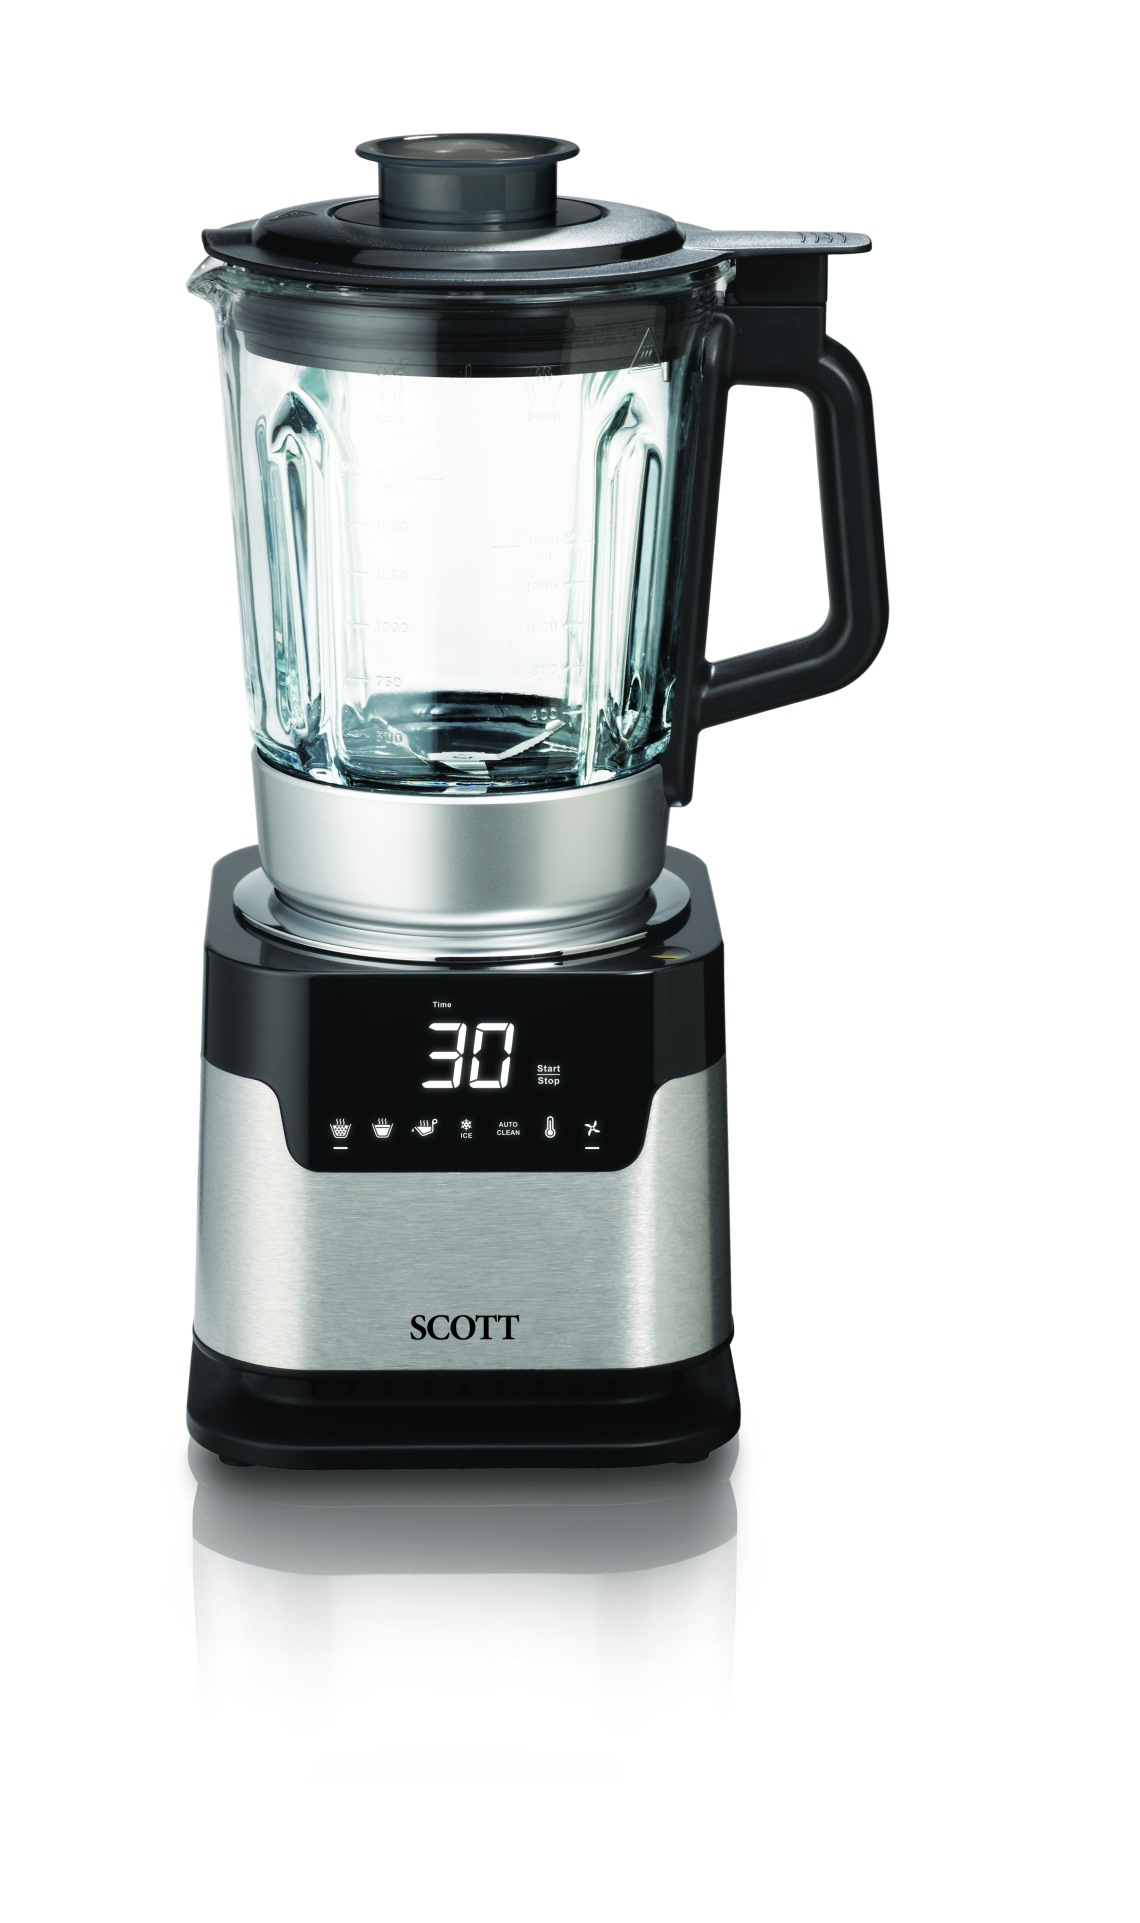 SCOTT Blender Gustissimo